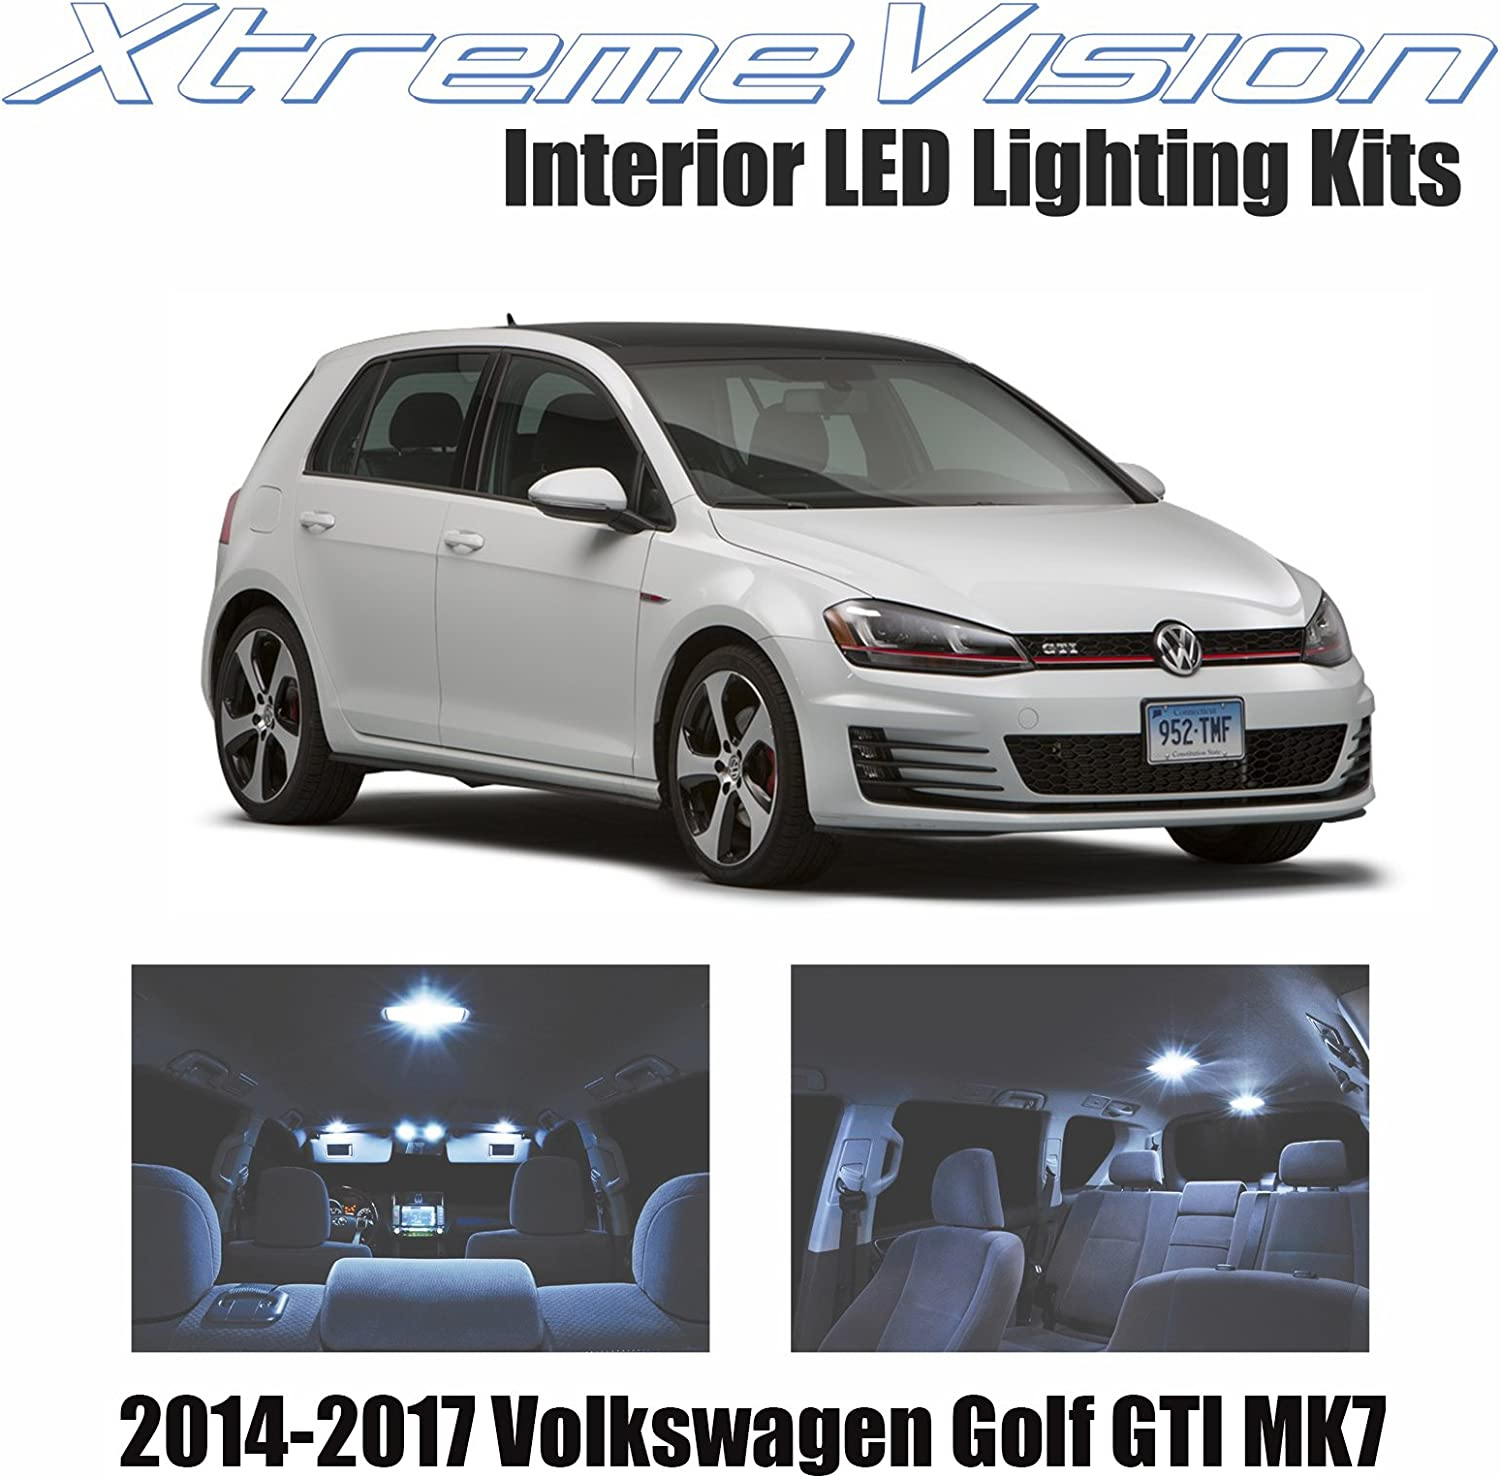 Amazon Com Xtremevision Interior Led For Volkswagen Golf Gti Mk7 2014 2017 8 Pieces Cool White Interior Led Kit Installation Tool Automotive